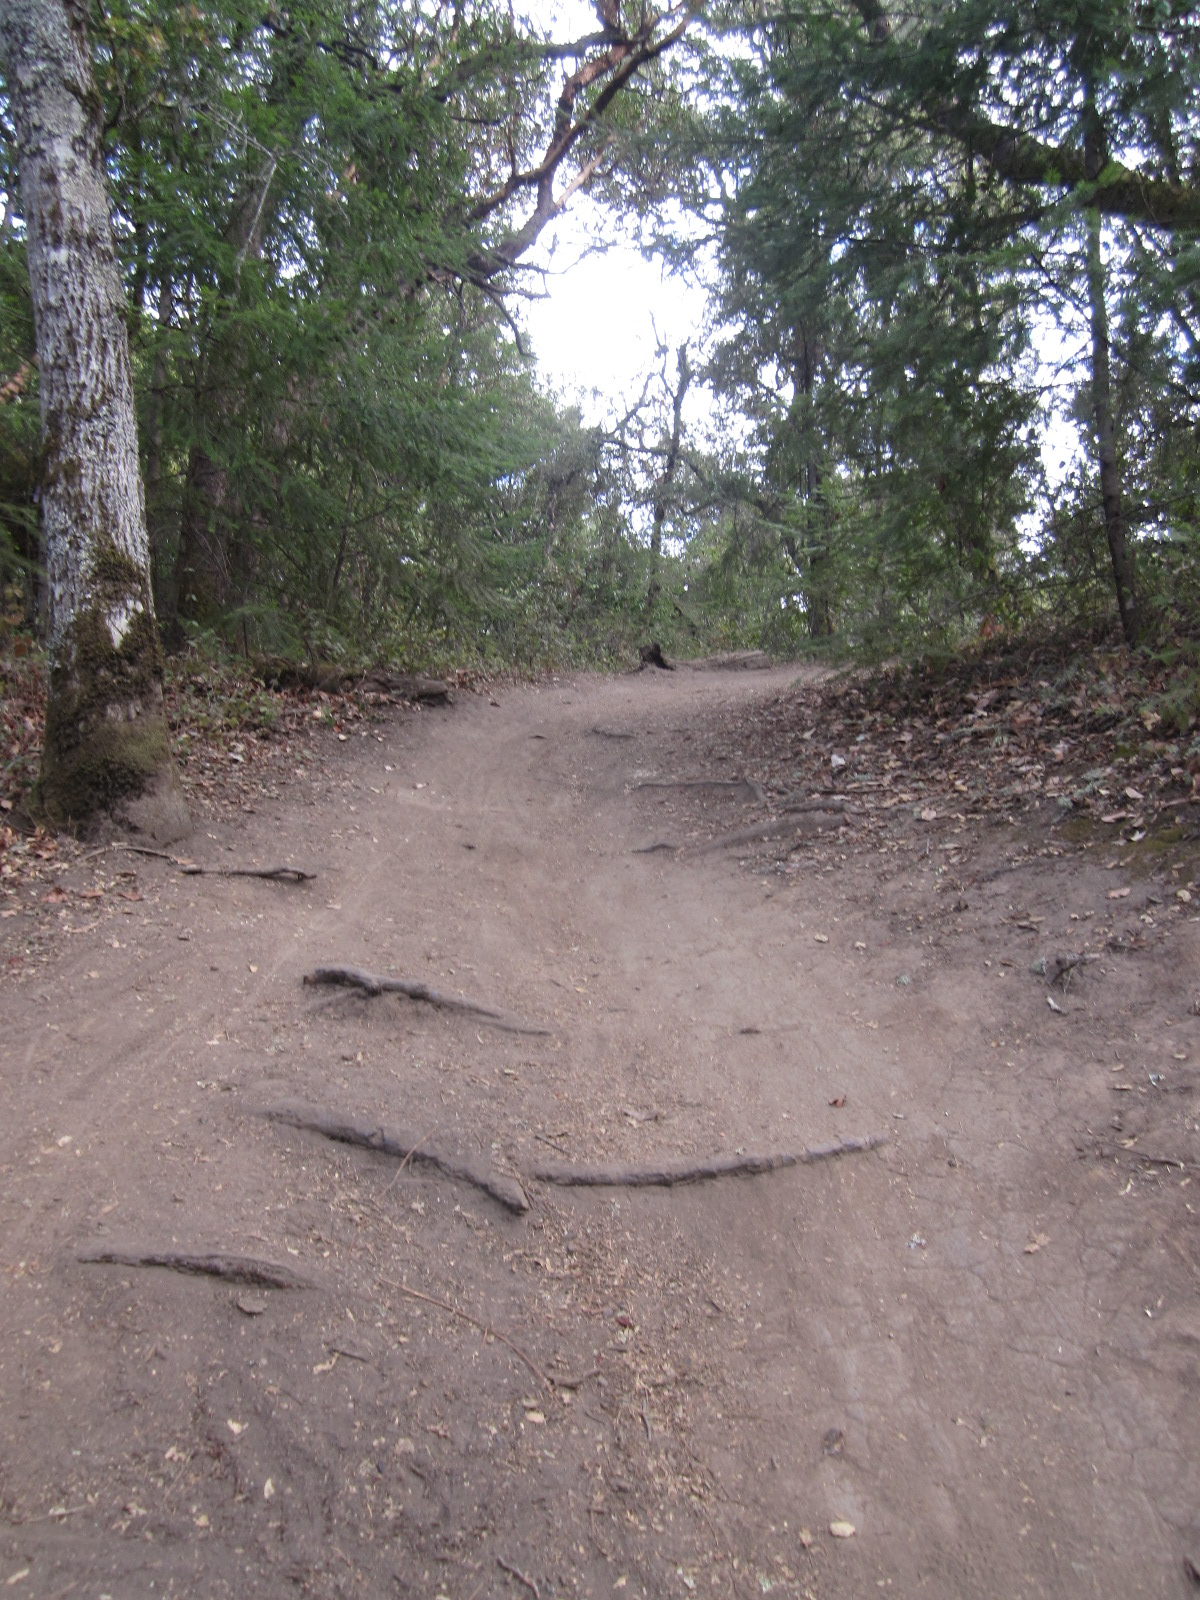 The obstacle course of tree roots that awaits the rider who bears left